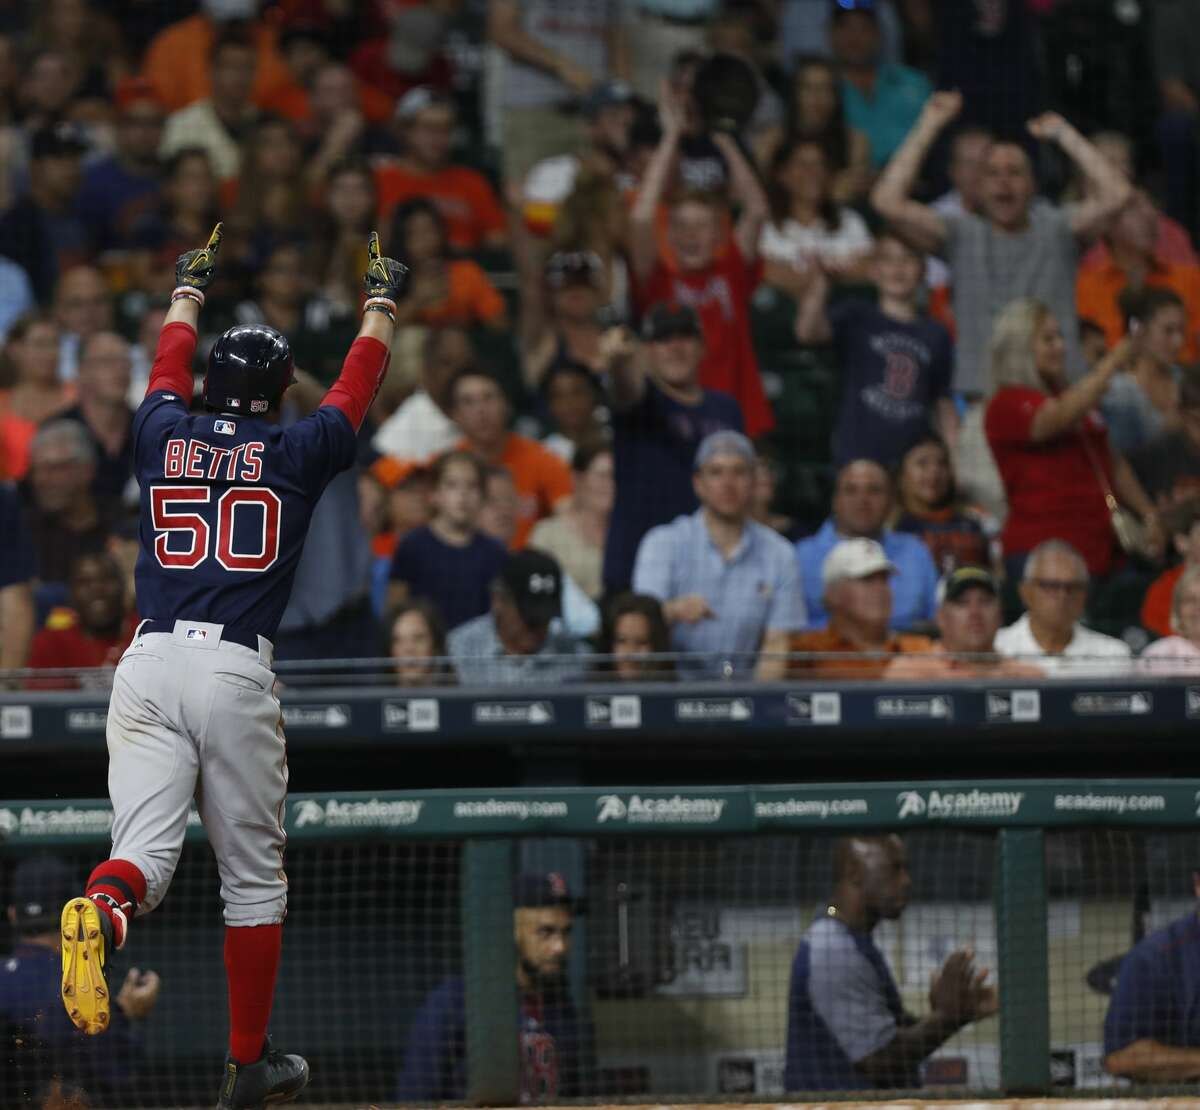 Boston Red Sox Mookie Betts (50) celebrates his home run during the eighth inning of an MLB game at Minute Maid Park, Friday, June, 16, 2017. ( Karen Warren / Houston Chronicle )